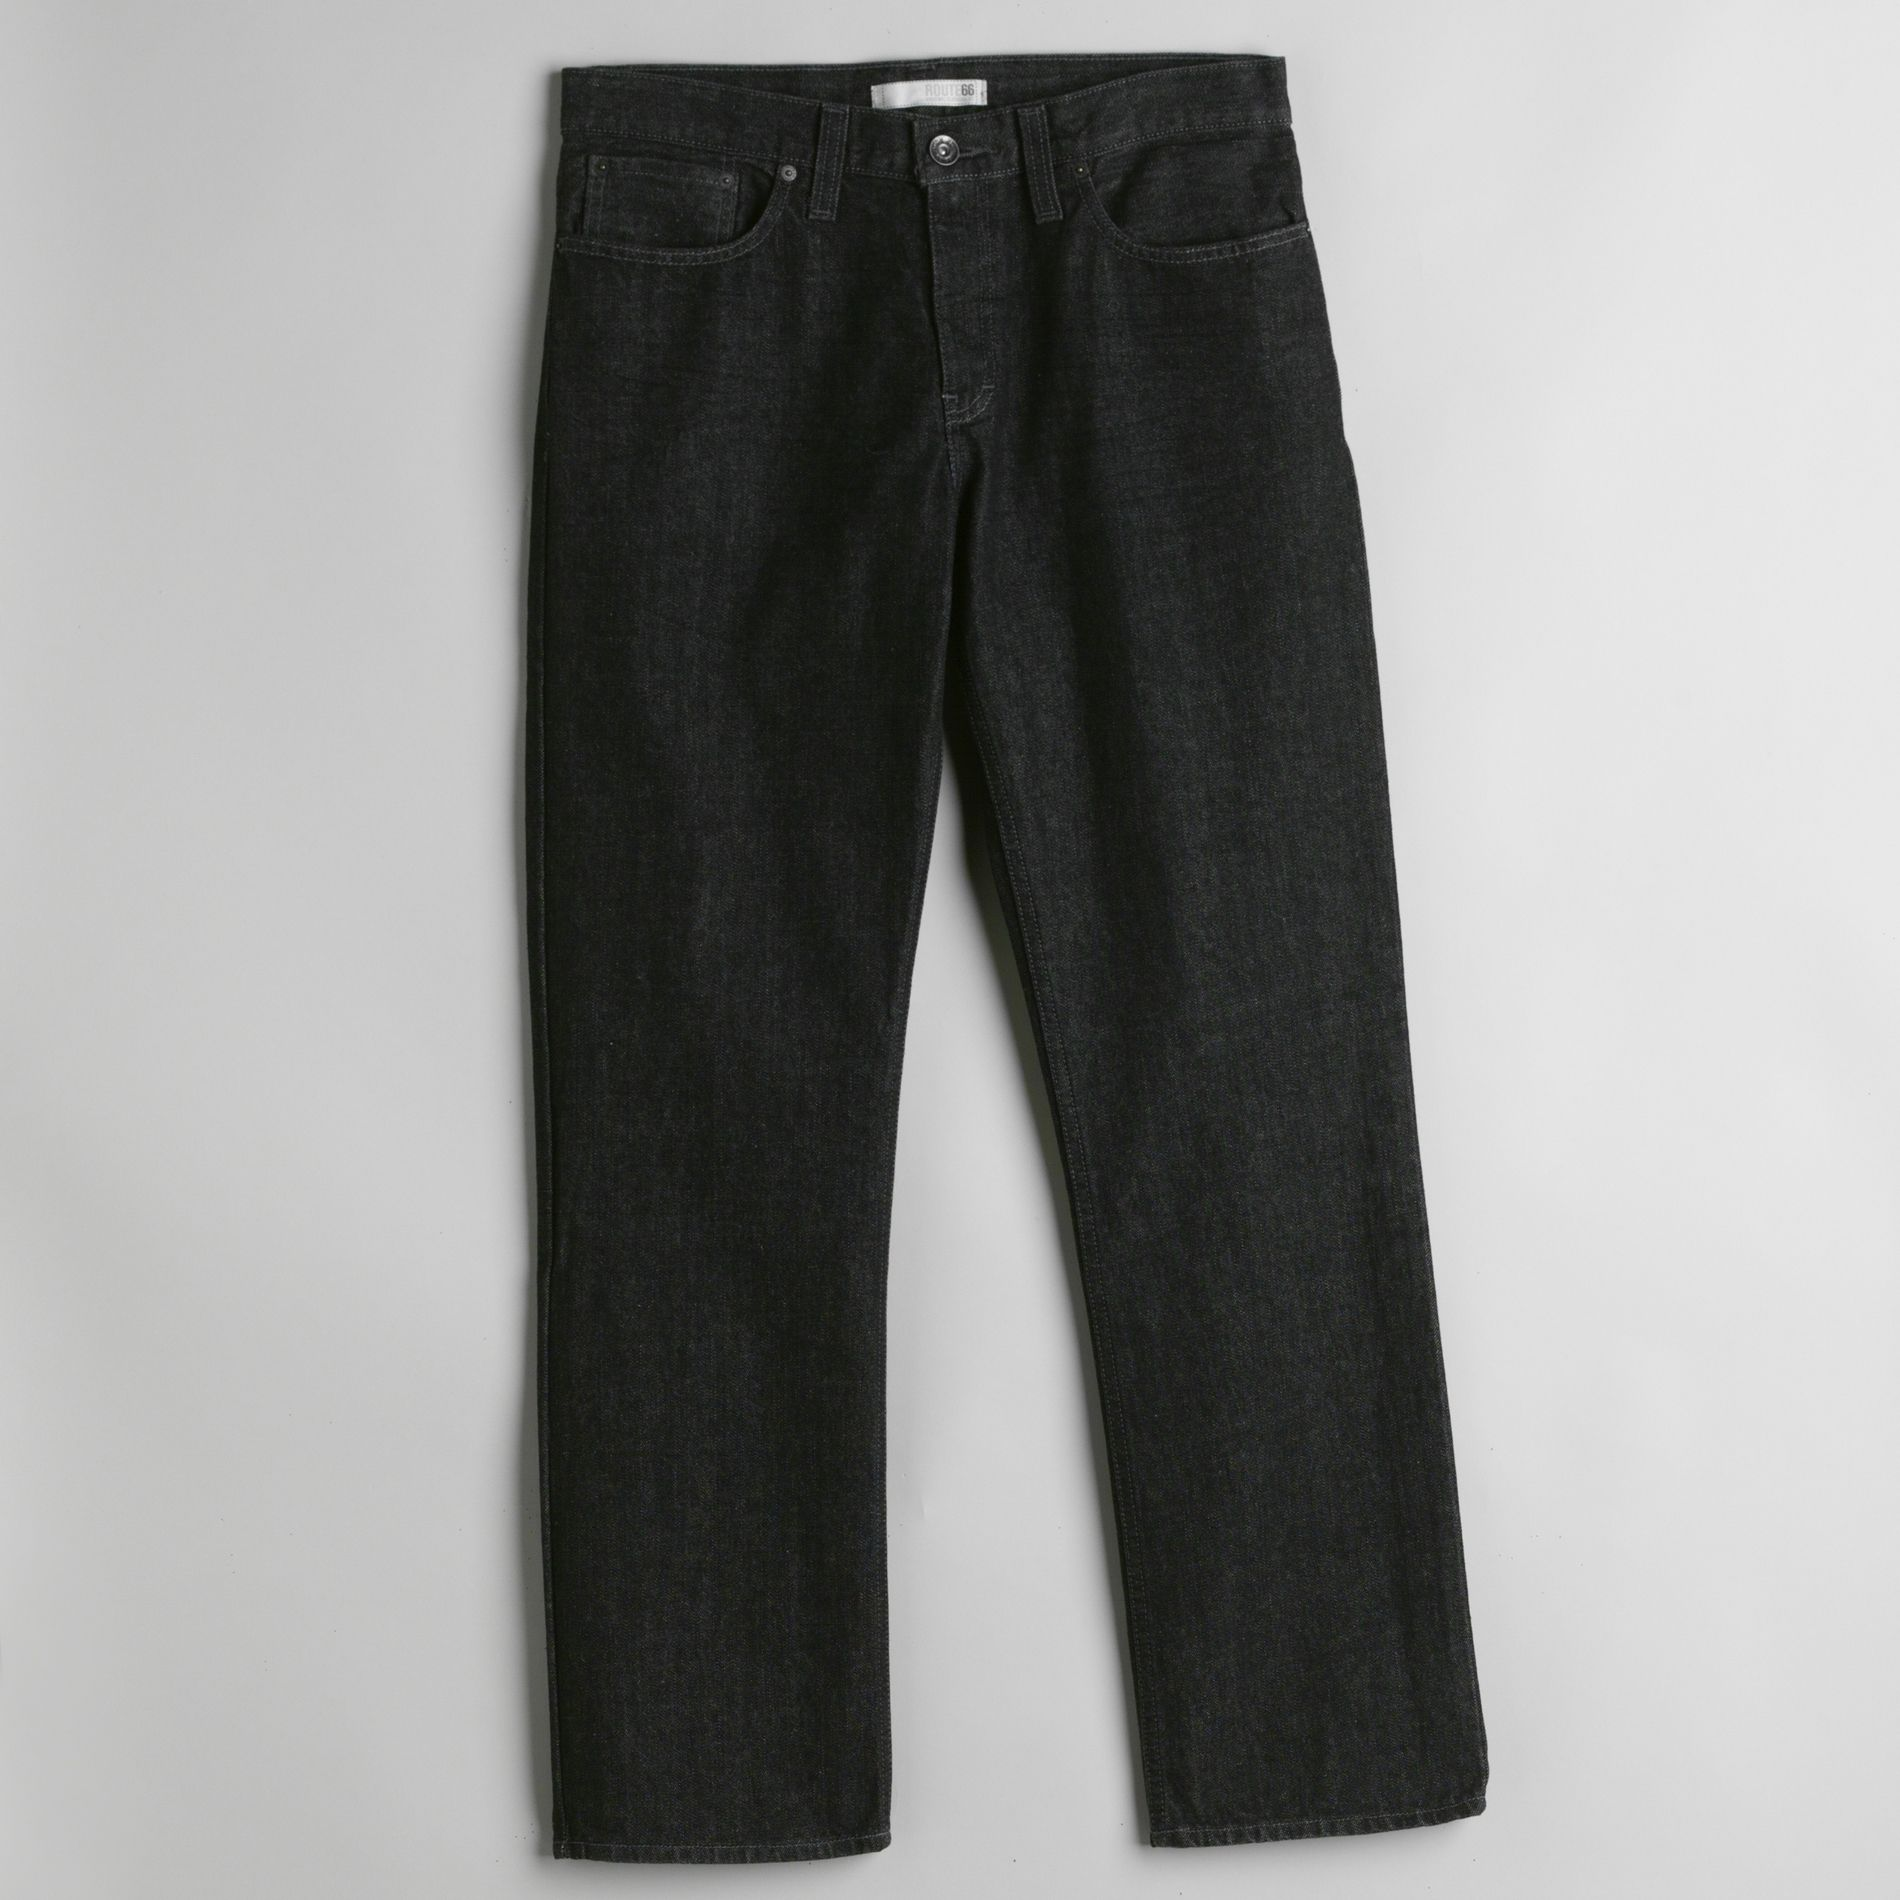 Route 66 Men's Slim Straight Jeans